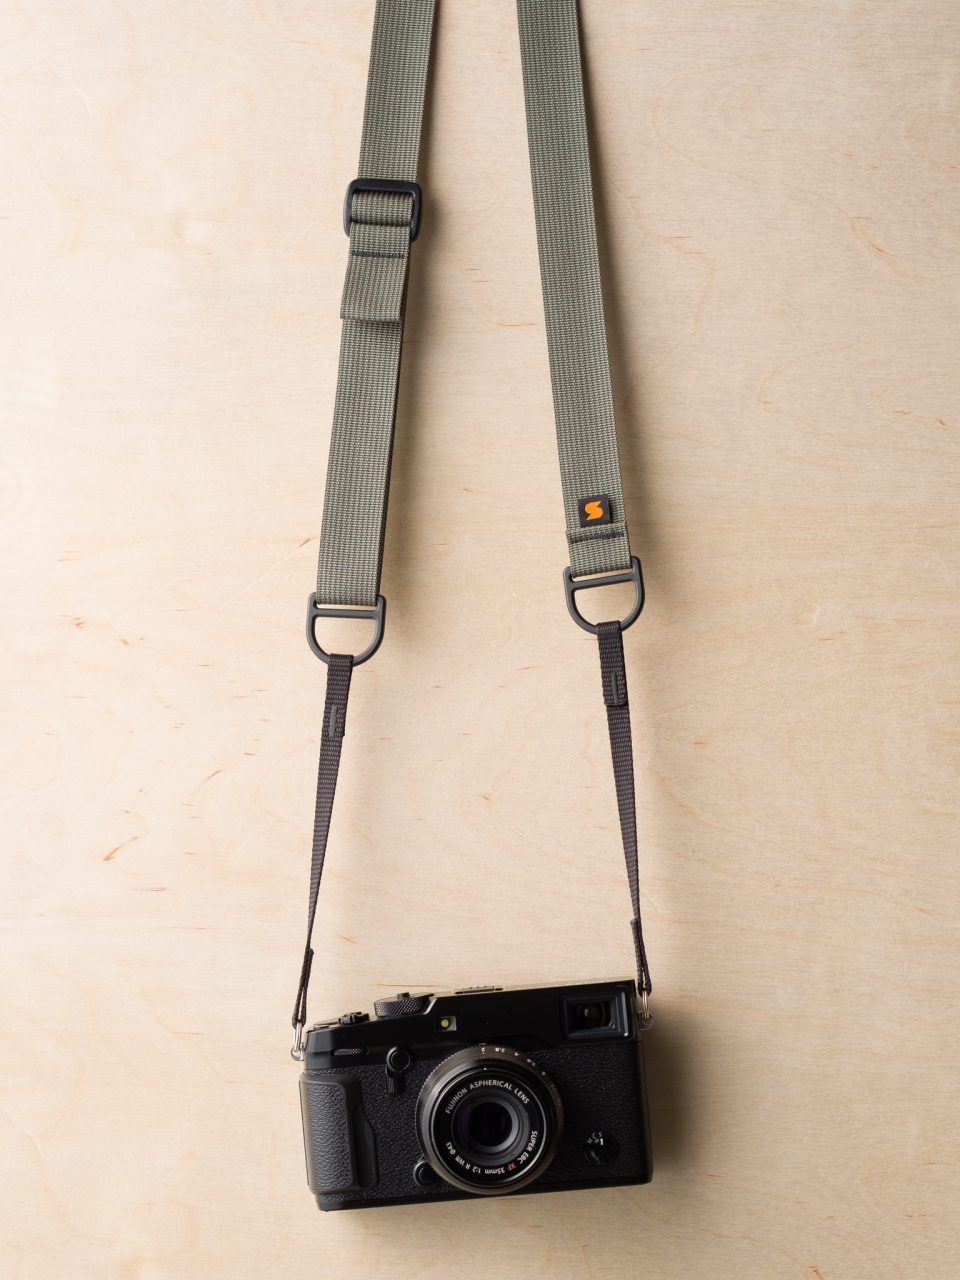 F1 Sling Style Camera Strap on Fuji X-Pro2 in Castor Gray